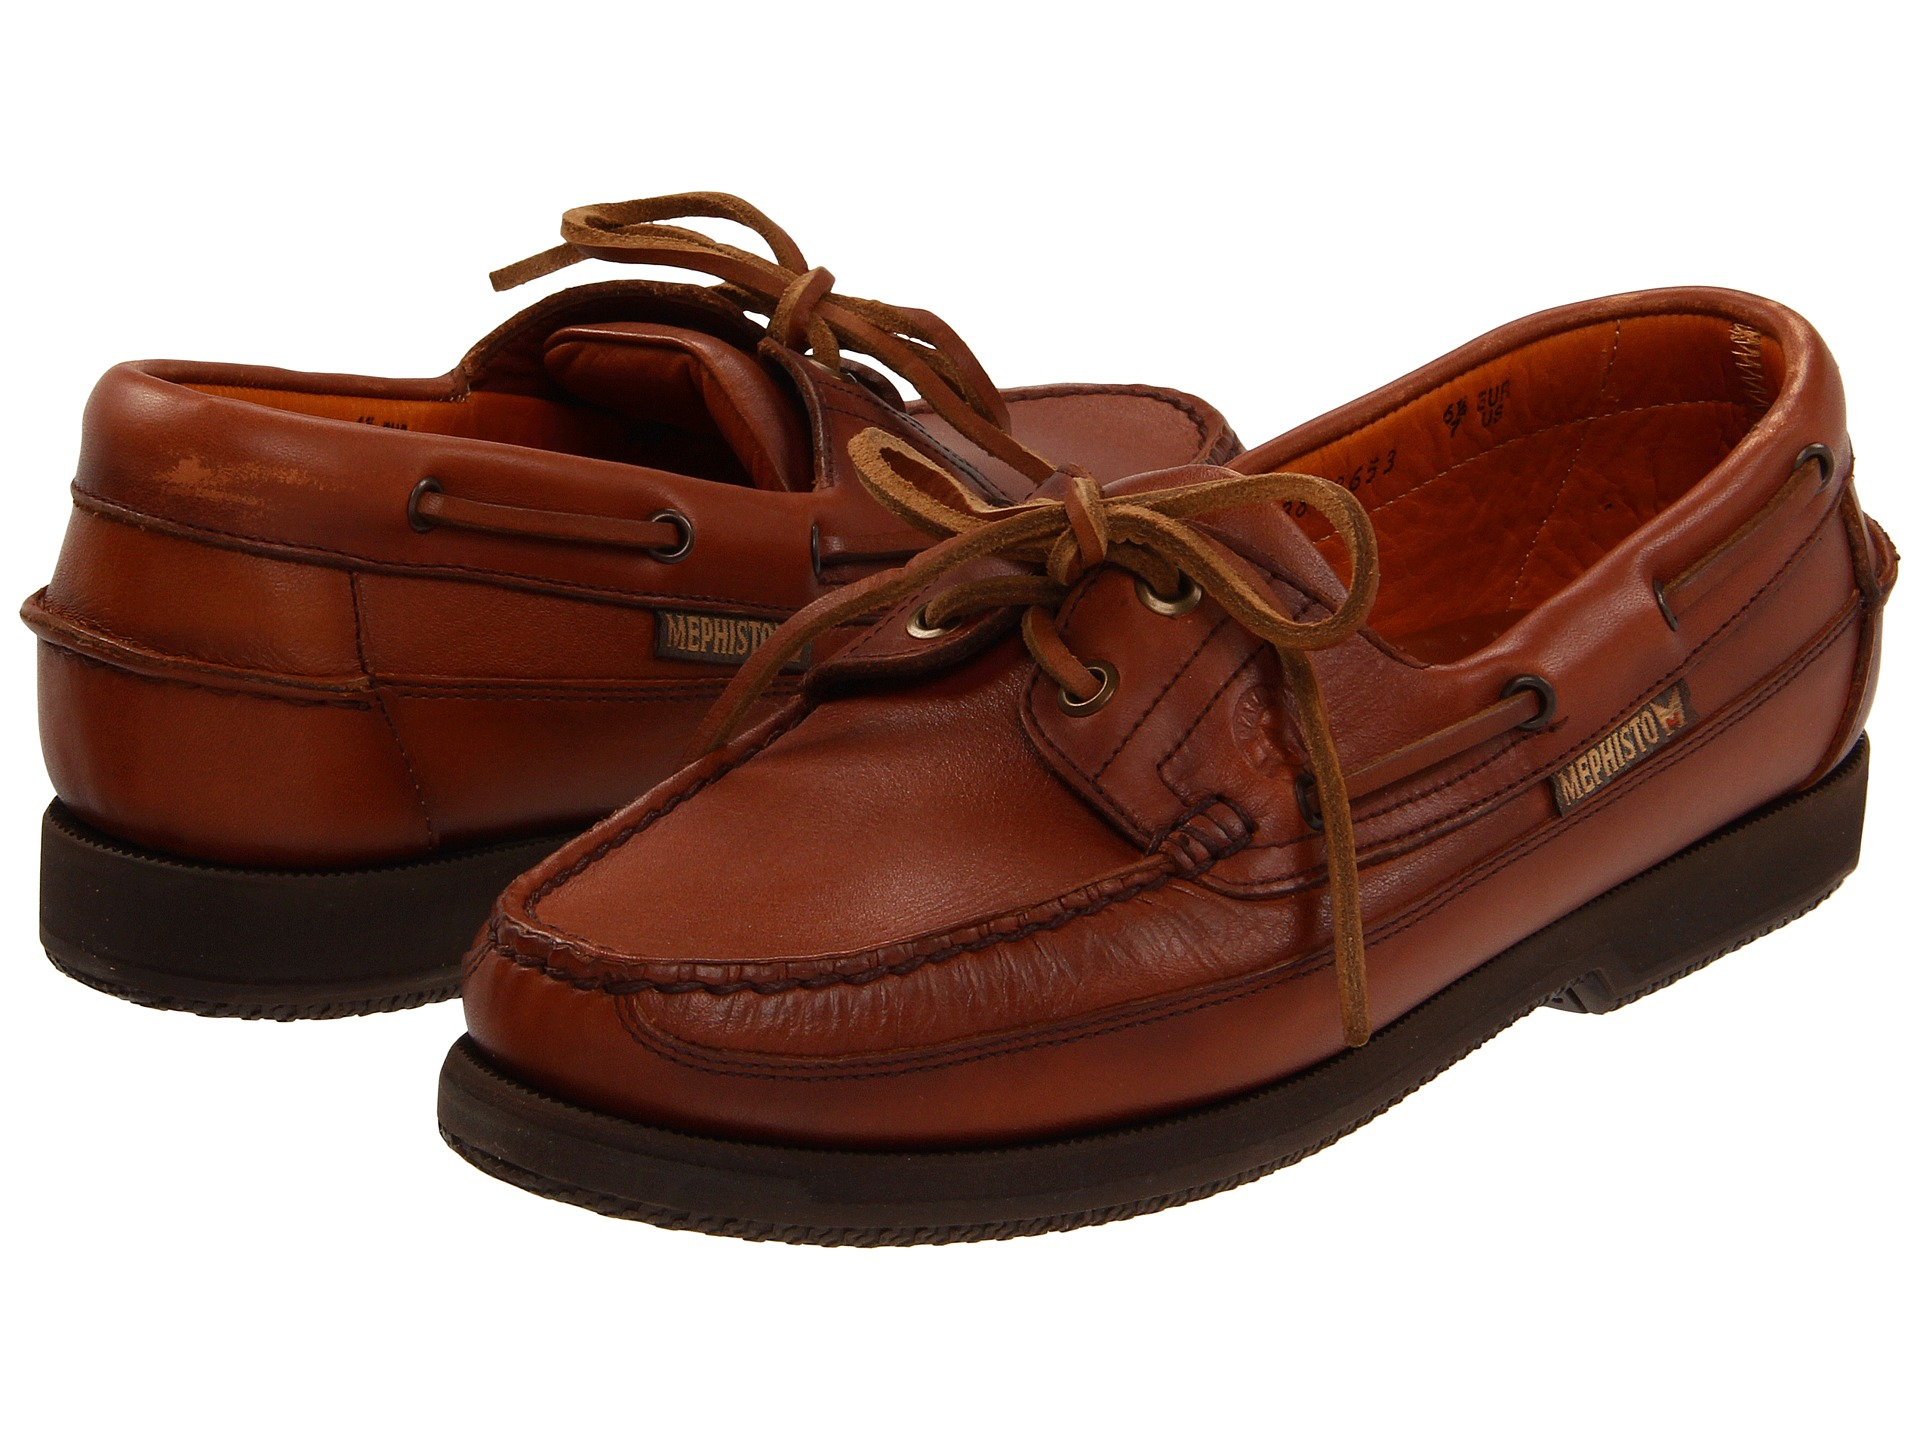 Mephisto Boat Shoes Sale